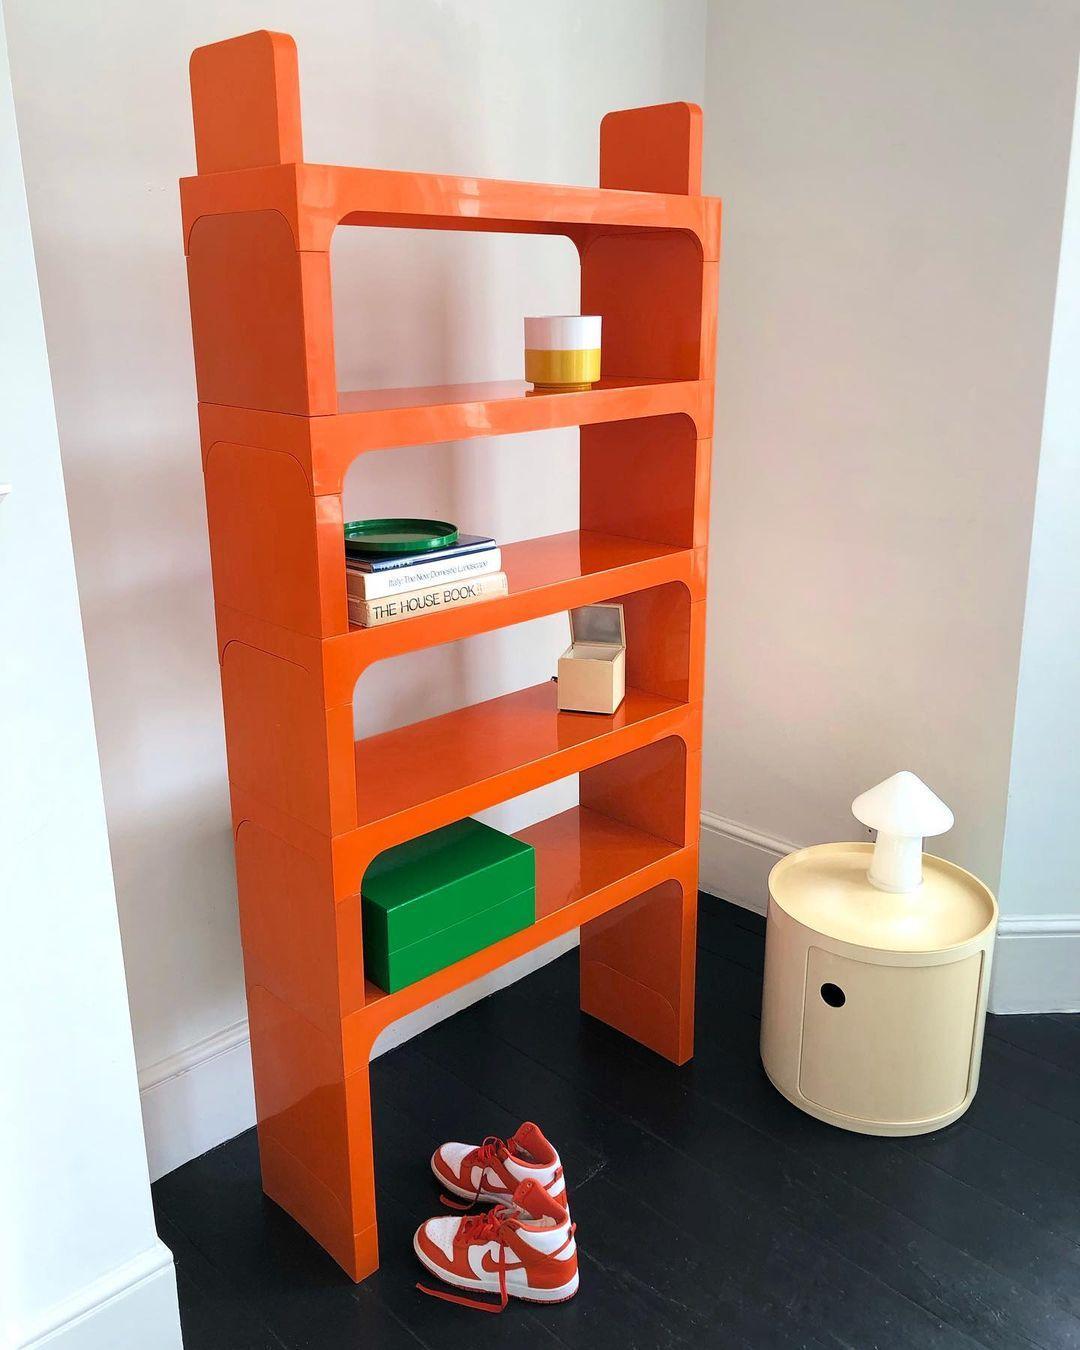 Red plastic shelving unit by Kartell, on a black wooden floor